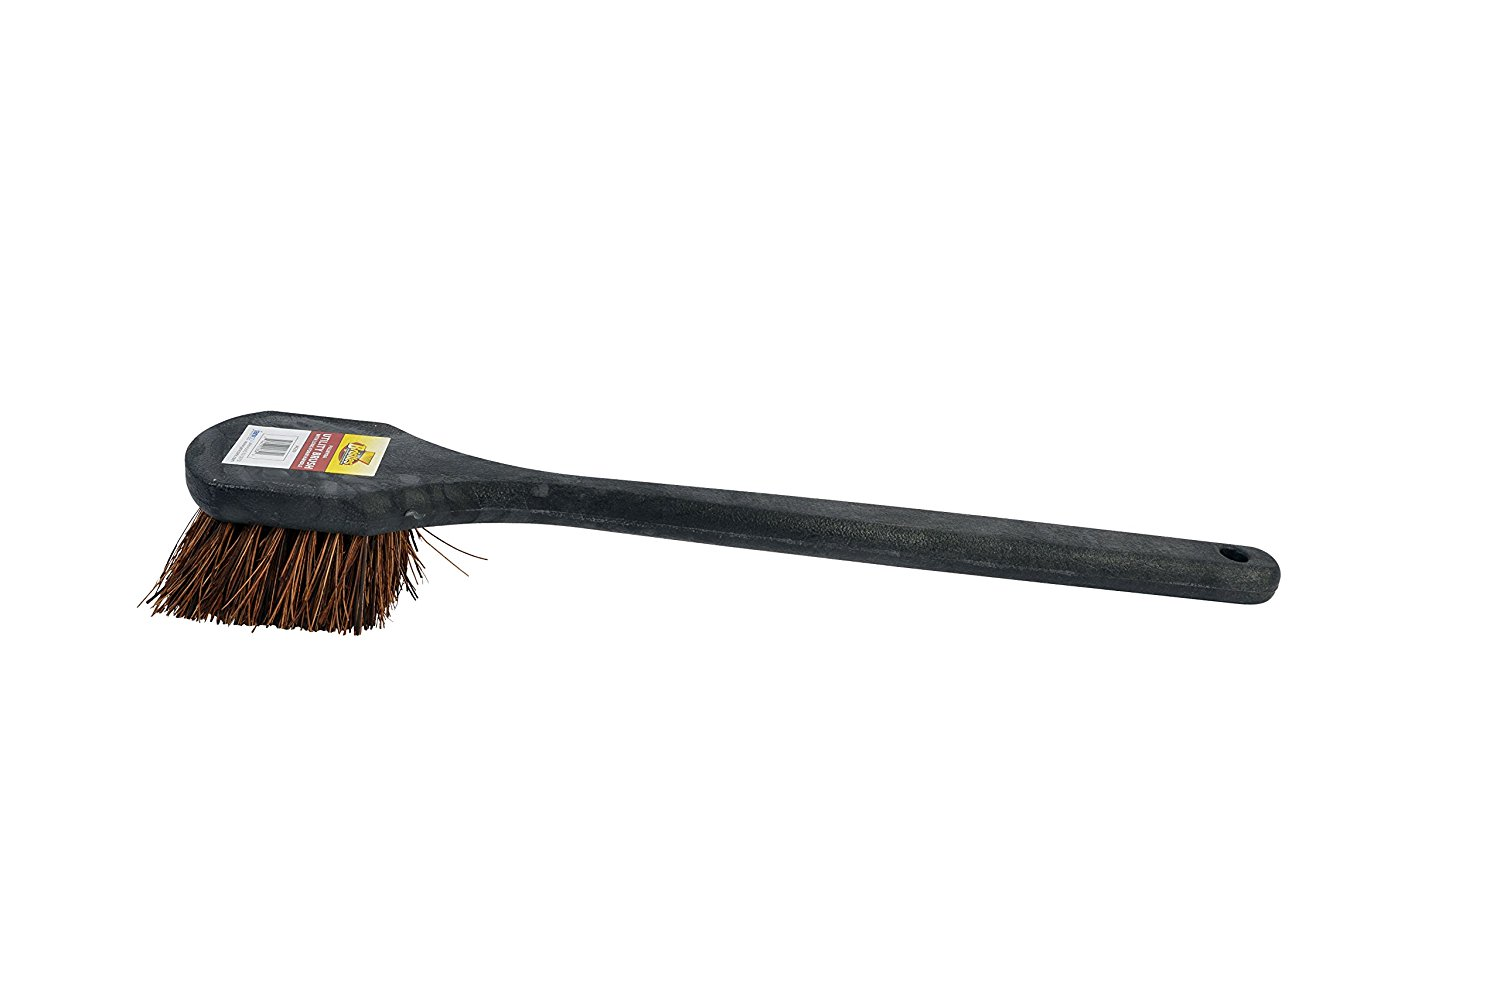 Janico 4209 Bristles 20 Inch Utility Brush with Palmyra Bristles, Black